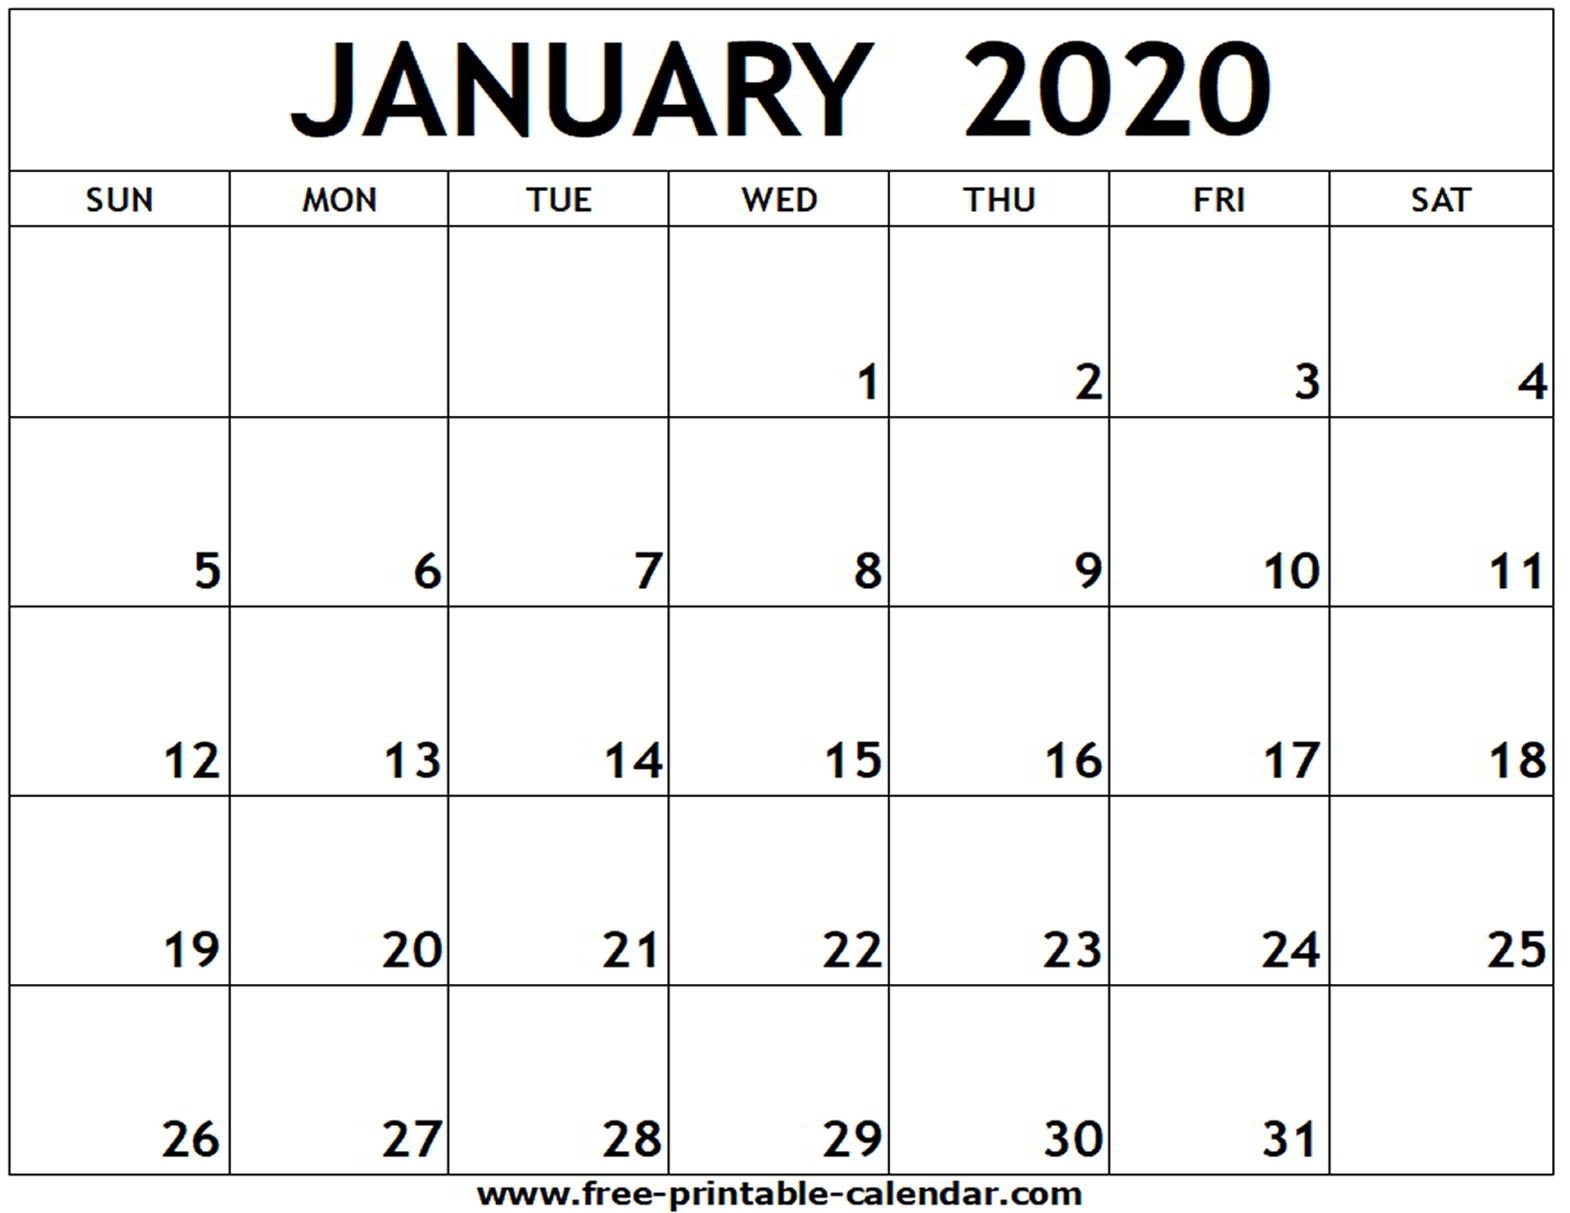 January 2020 Printable Calendar - Free-Printable-Calendar-January 2020 Us Calendar